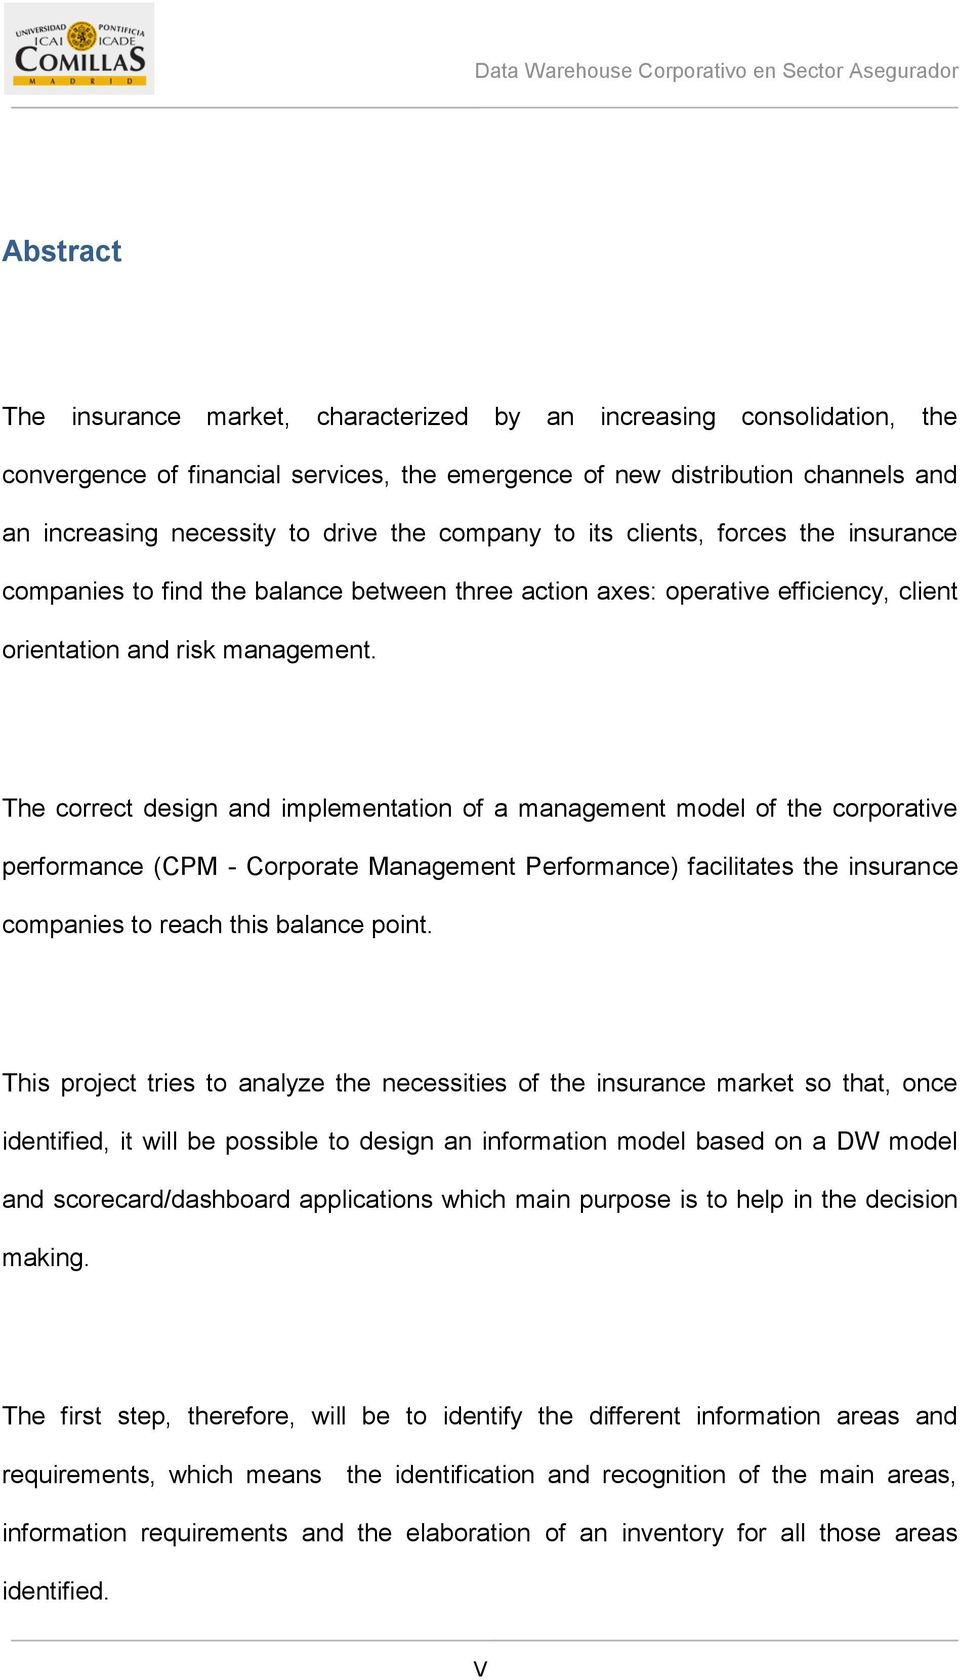 The correct design and implementation of a management model of the corporative performance (CPM - Corporate Management Performance) facilitates the insurance companies to reach this balance point.